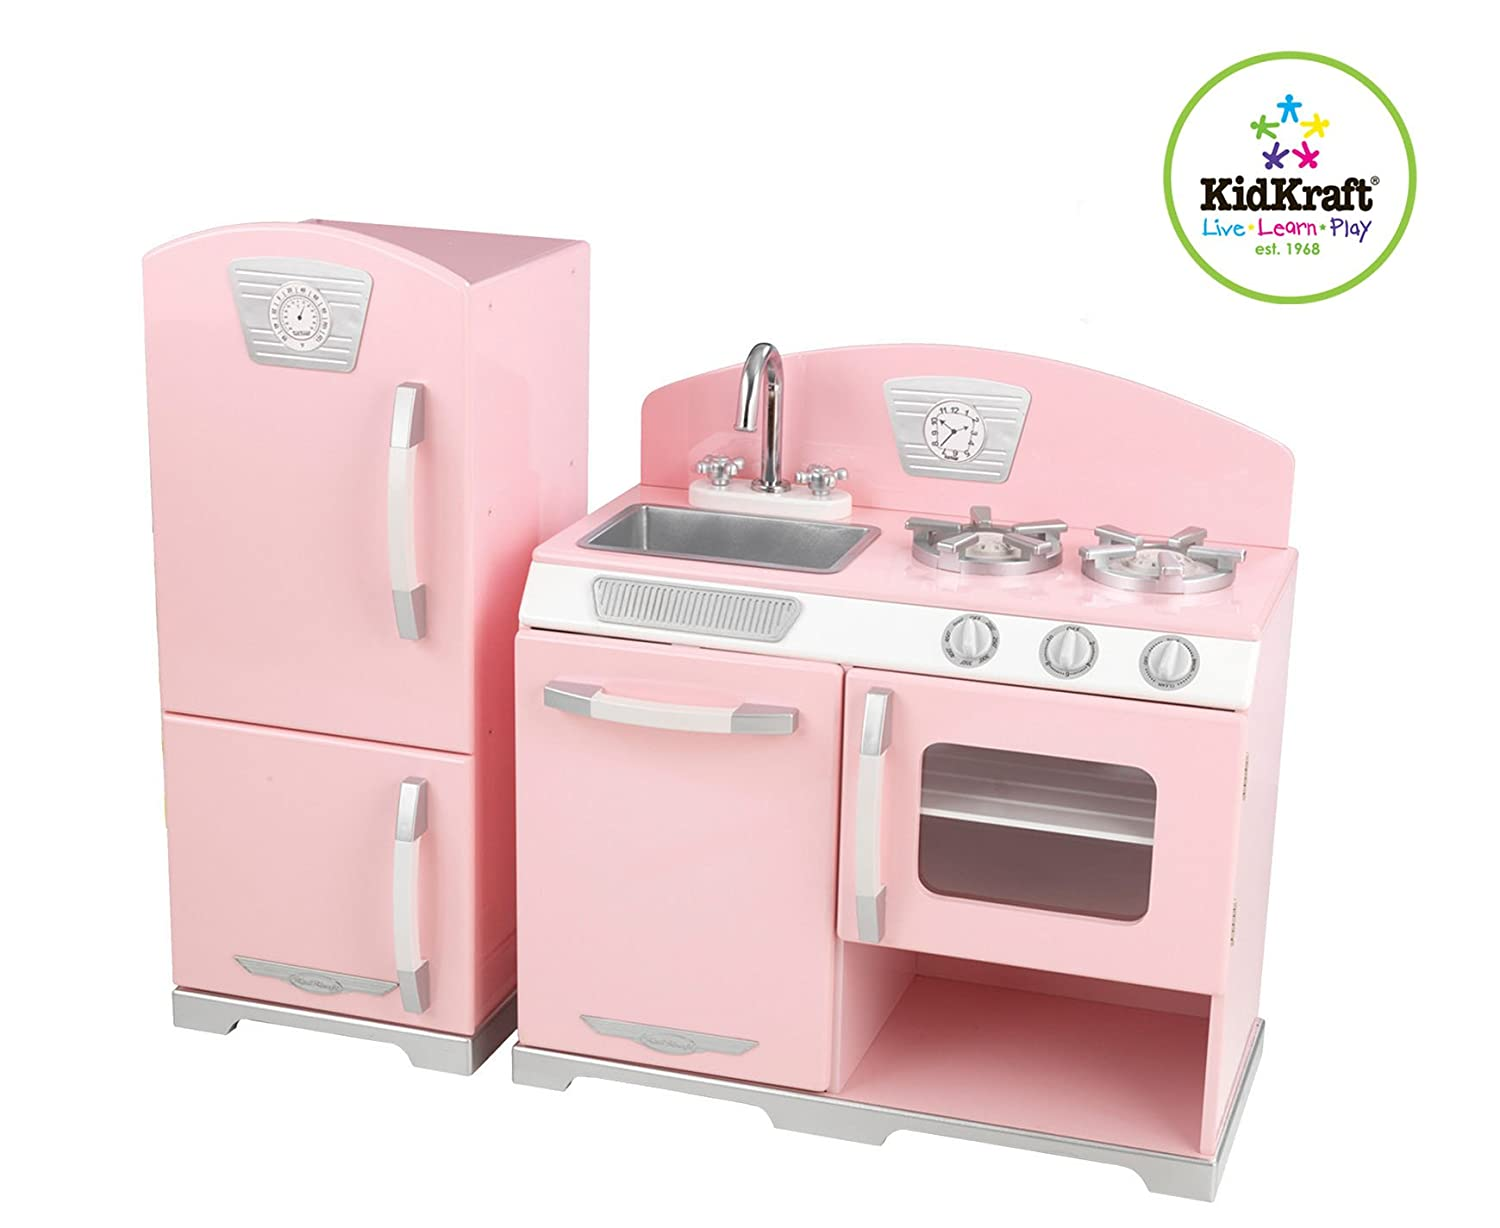 Kidkraft Pink Retro Kitchen And Refrigerator – Donkies